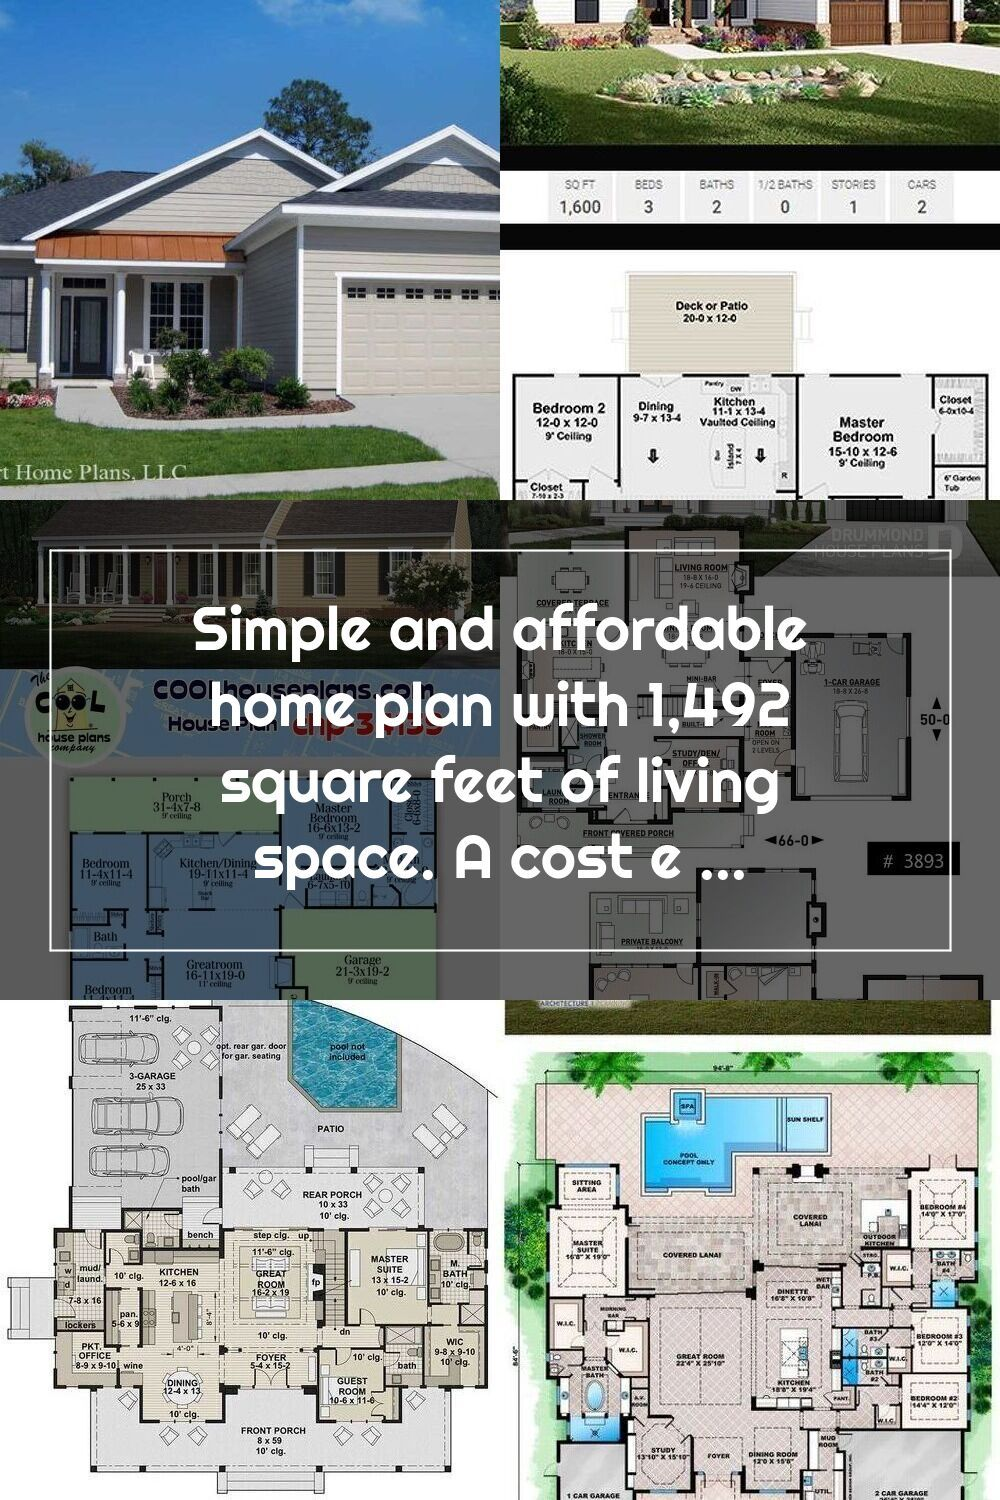 Simple And Affordable Home Plan With 1 492 Square Feet Of Living Space A C In 2020 House Plans Starter Home Plans Living Spaces